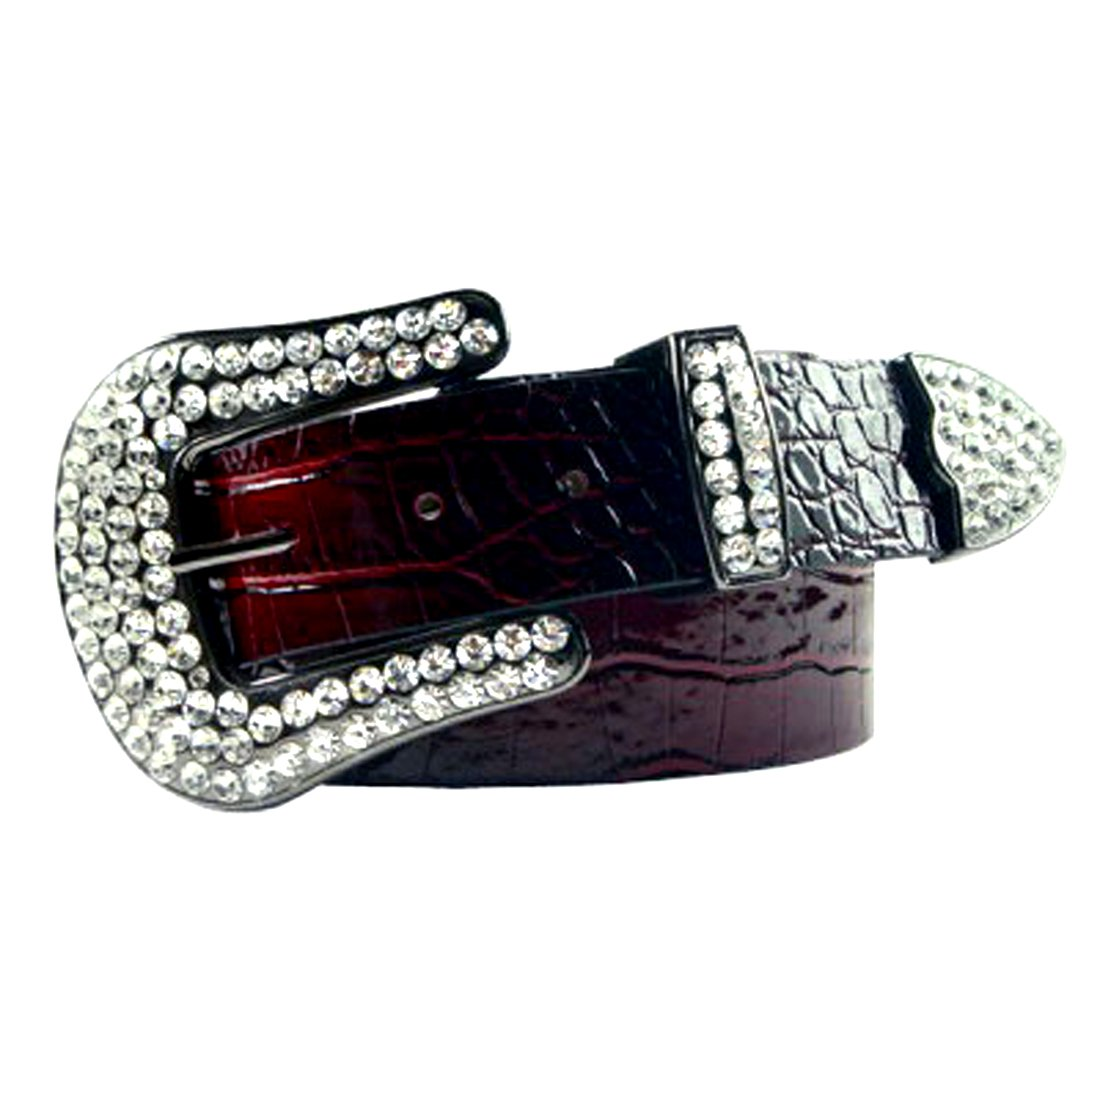 Red Patent Leather Belt in a Crocodile Pattern, Clear Crystal, Size L/XL